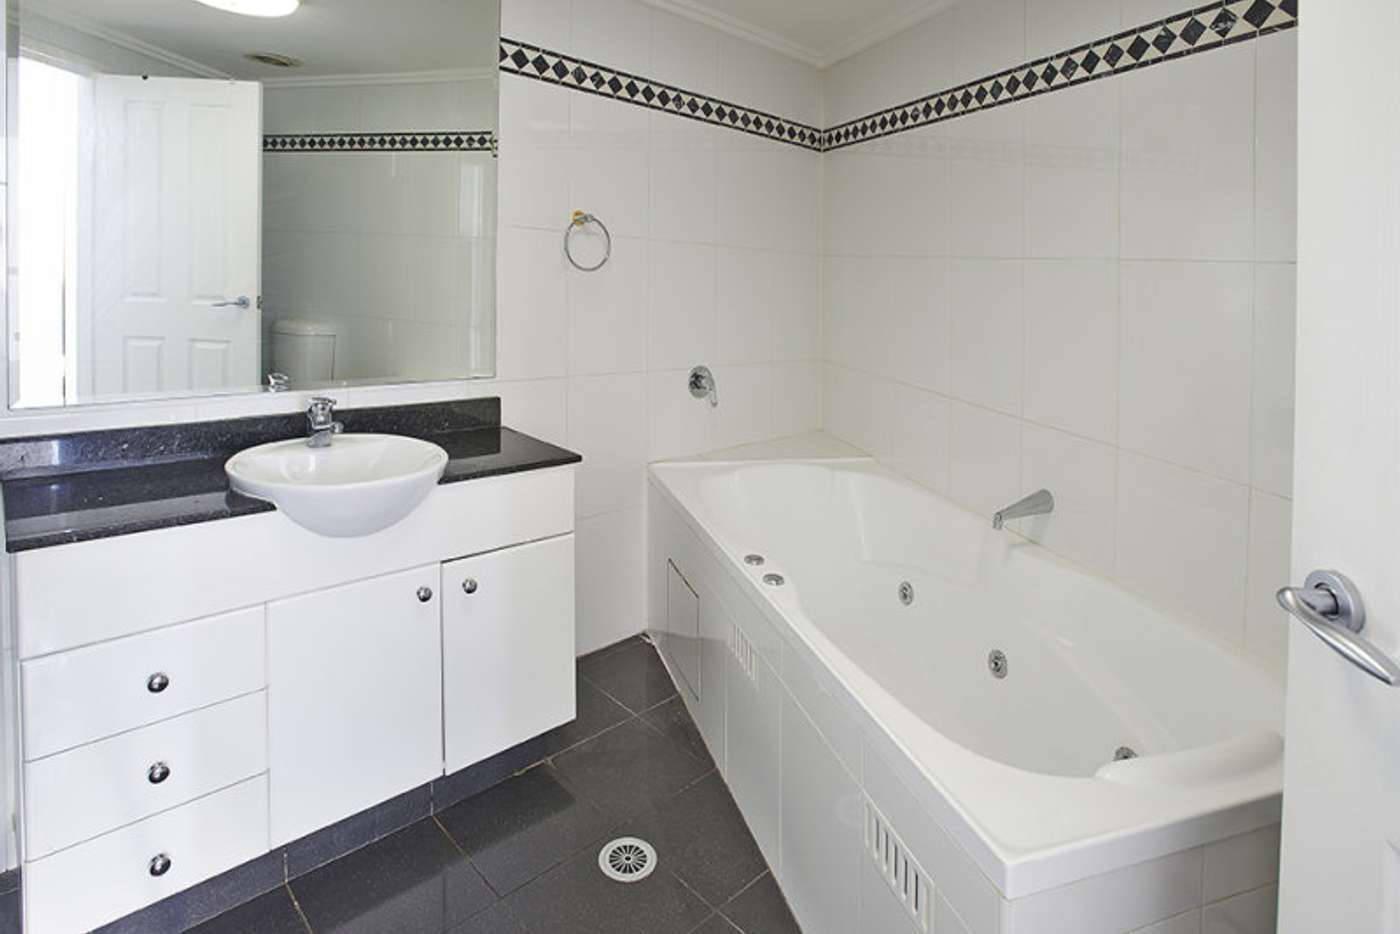 Seventh view of Homely apartment listing, 235/13-15 Hassall Street, Parramatta NSW 2150